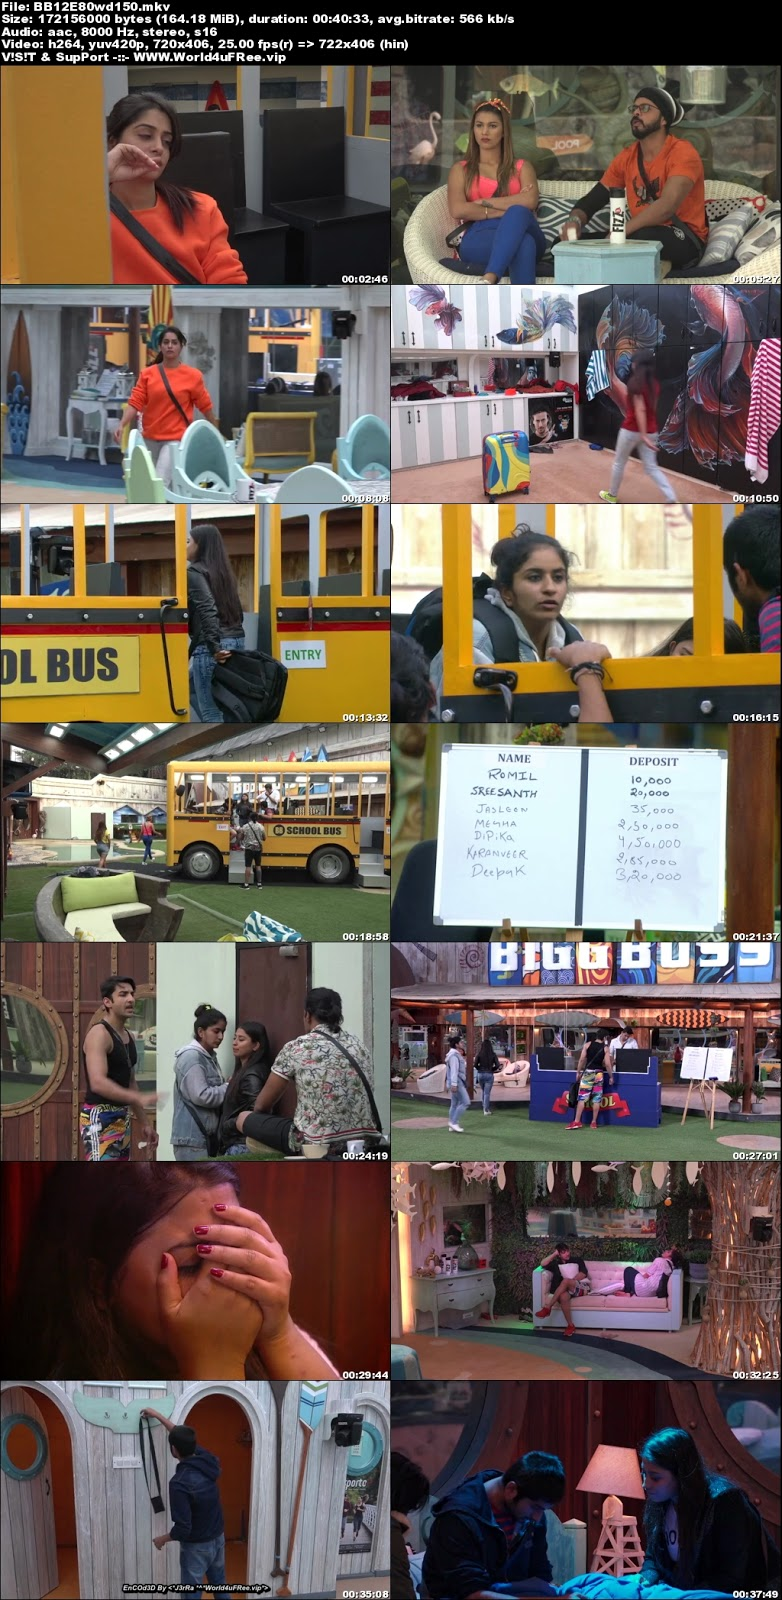 Bigg Boss 12 Episode 80 05 December 2018 WEBRip 480p 150Mb x264 world4ufree.fun tv show Bigg Boss 12 download Episode 80 05 December 2018 world4ufree.fun 200mb compressed small size free download or watch online at world4ufree.fun